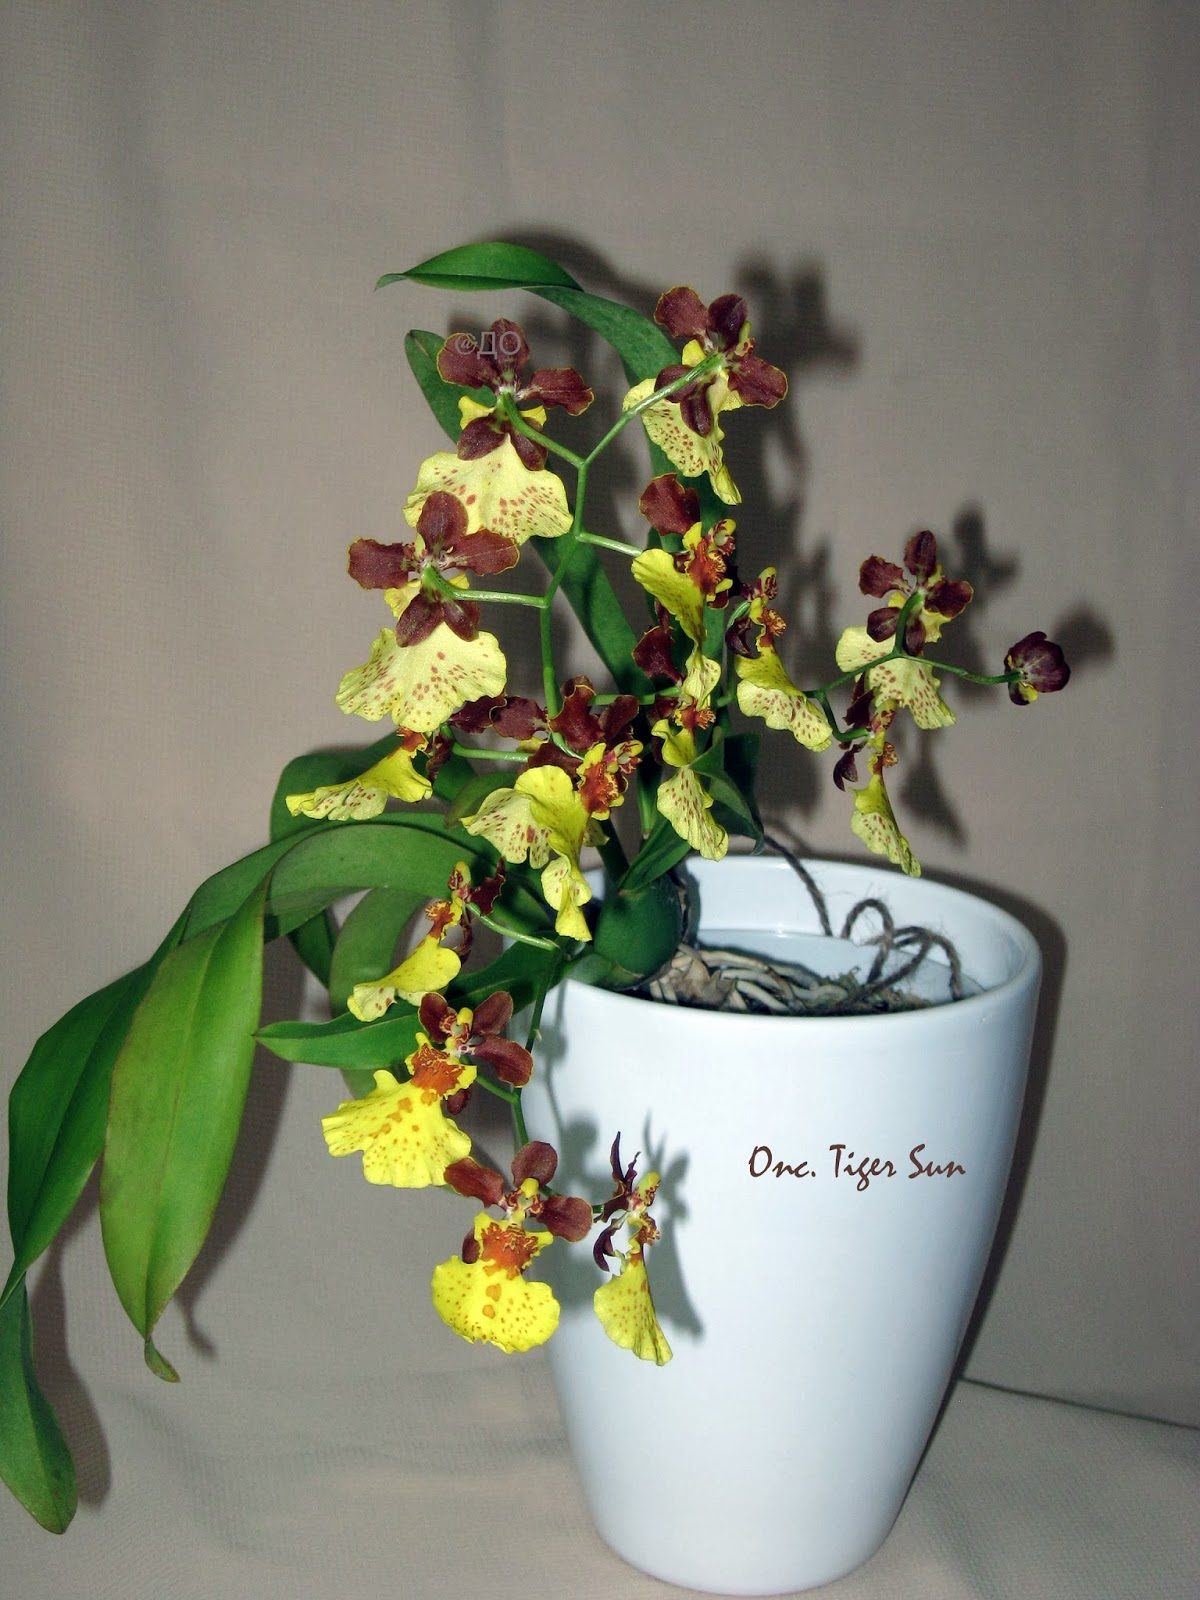 Oncidium Tiger Sun - цветение орхидеи в 2013 году - общий план